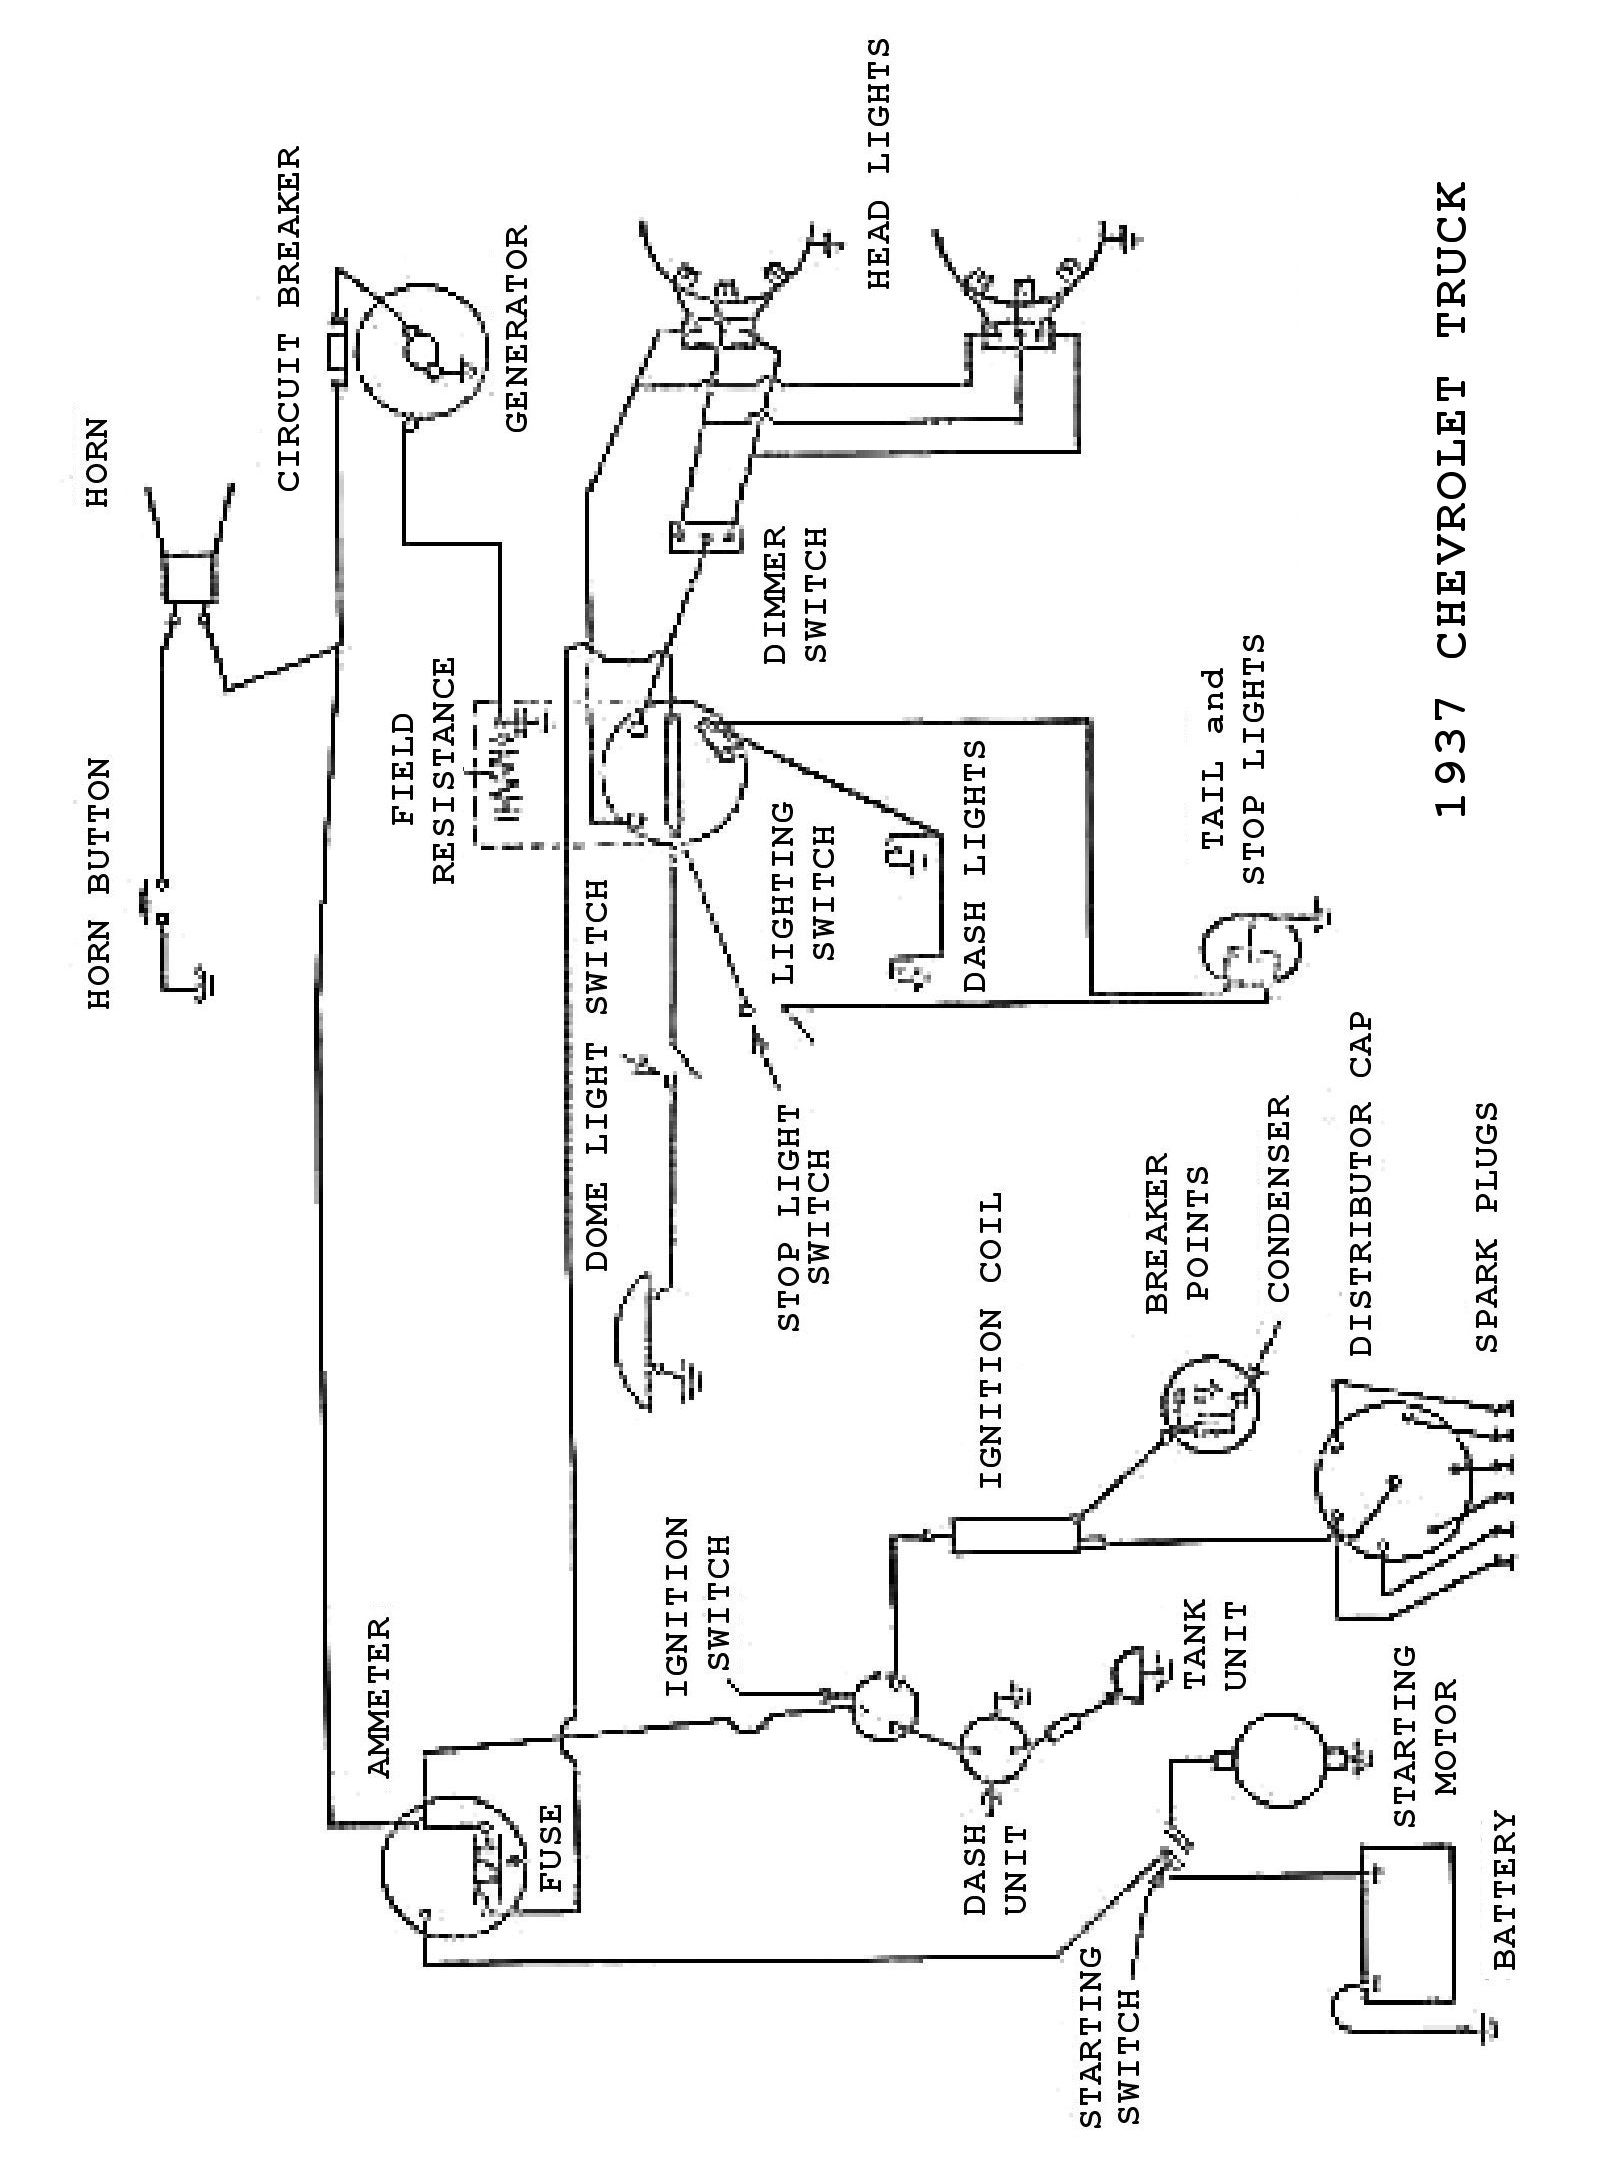 37truck chevy wiring diagrams chevy truck wiring diagram at et-consult.org